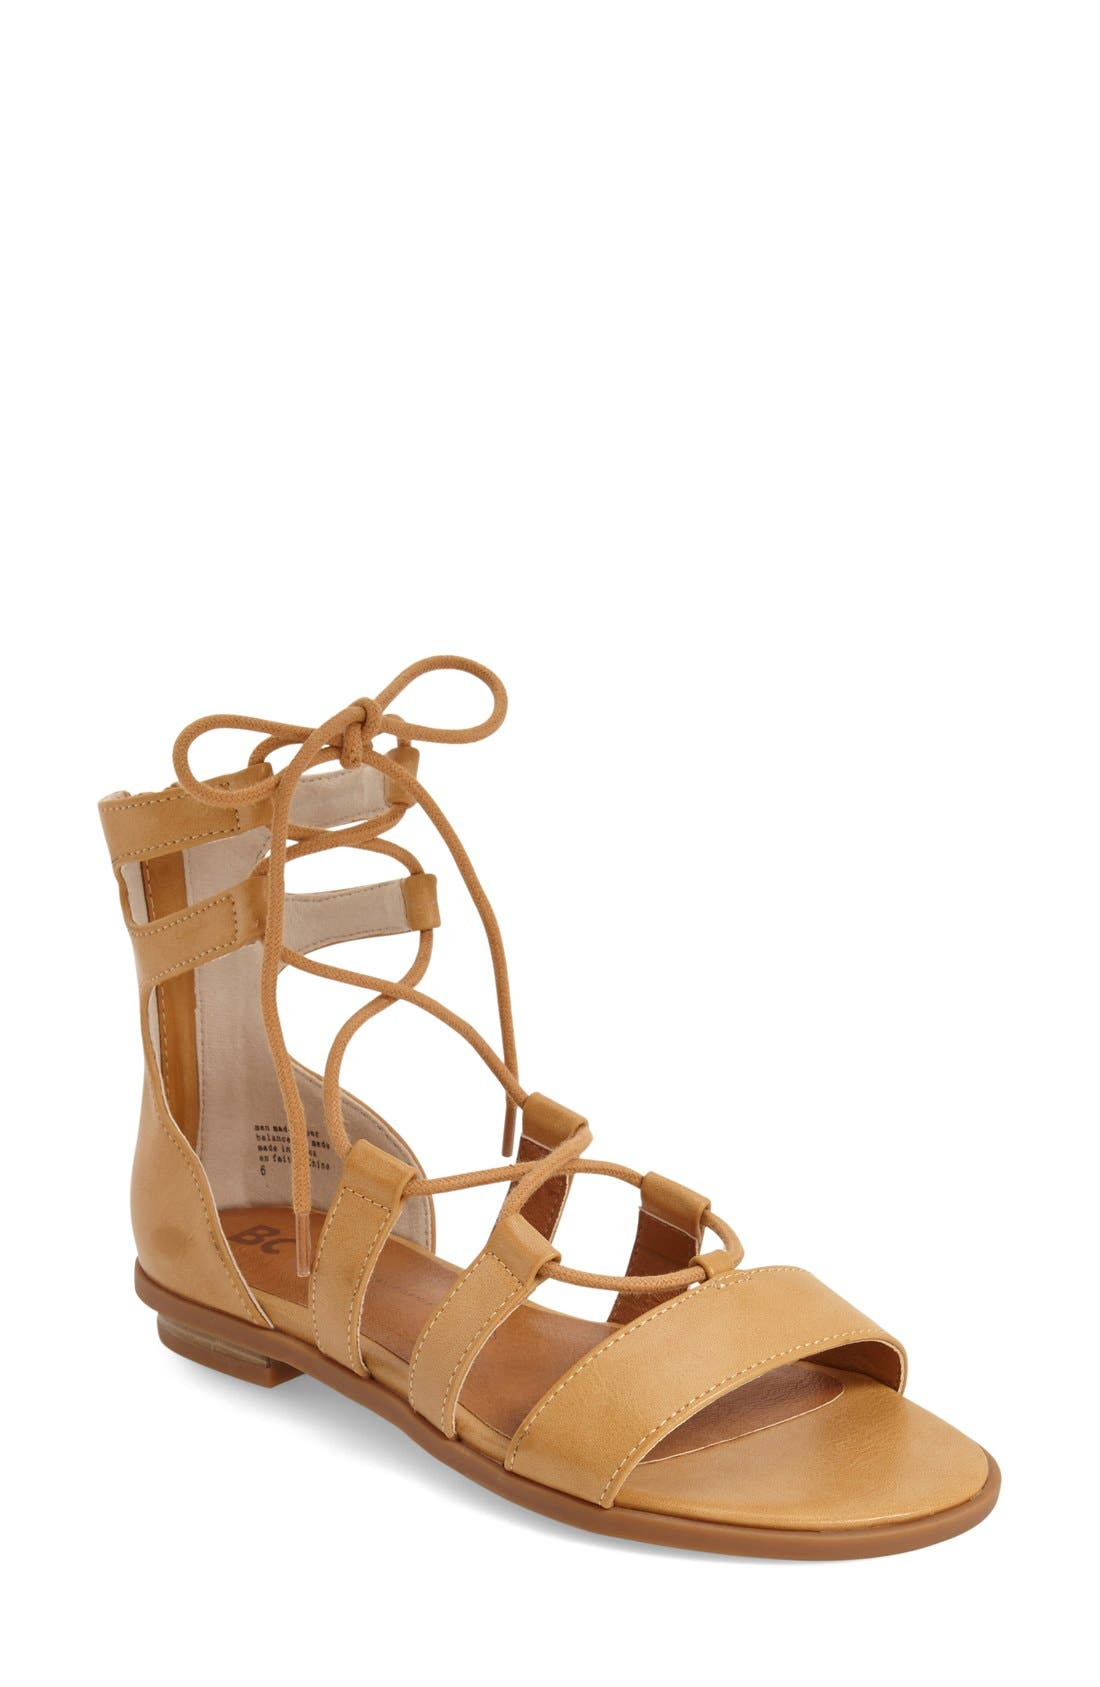 Alternate Image 1 Selected - BC Footwear 'Pocket Size' Lace-Up Flat Sandal (Women)